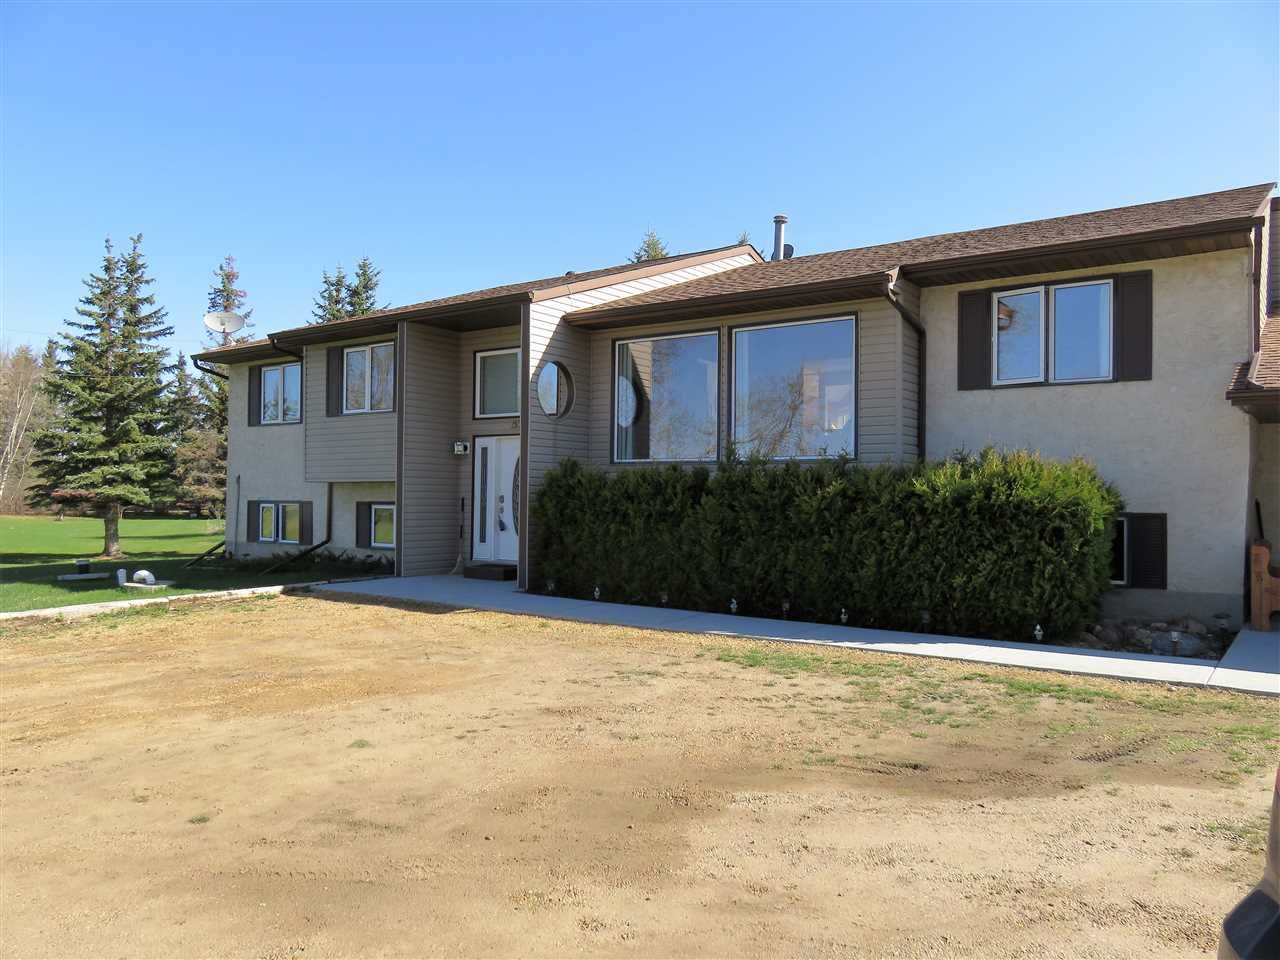 Main Photo: 157 5343 1 R 22 Road: Rural Strathcona County House for sale : MLS(r) # E4063017